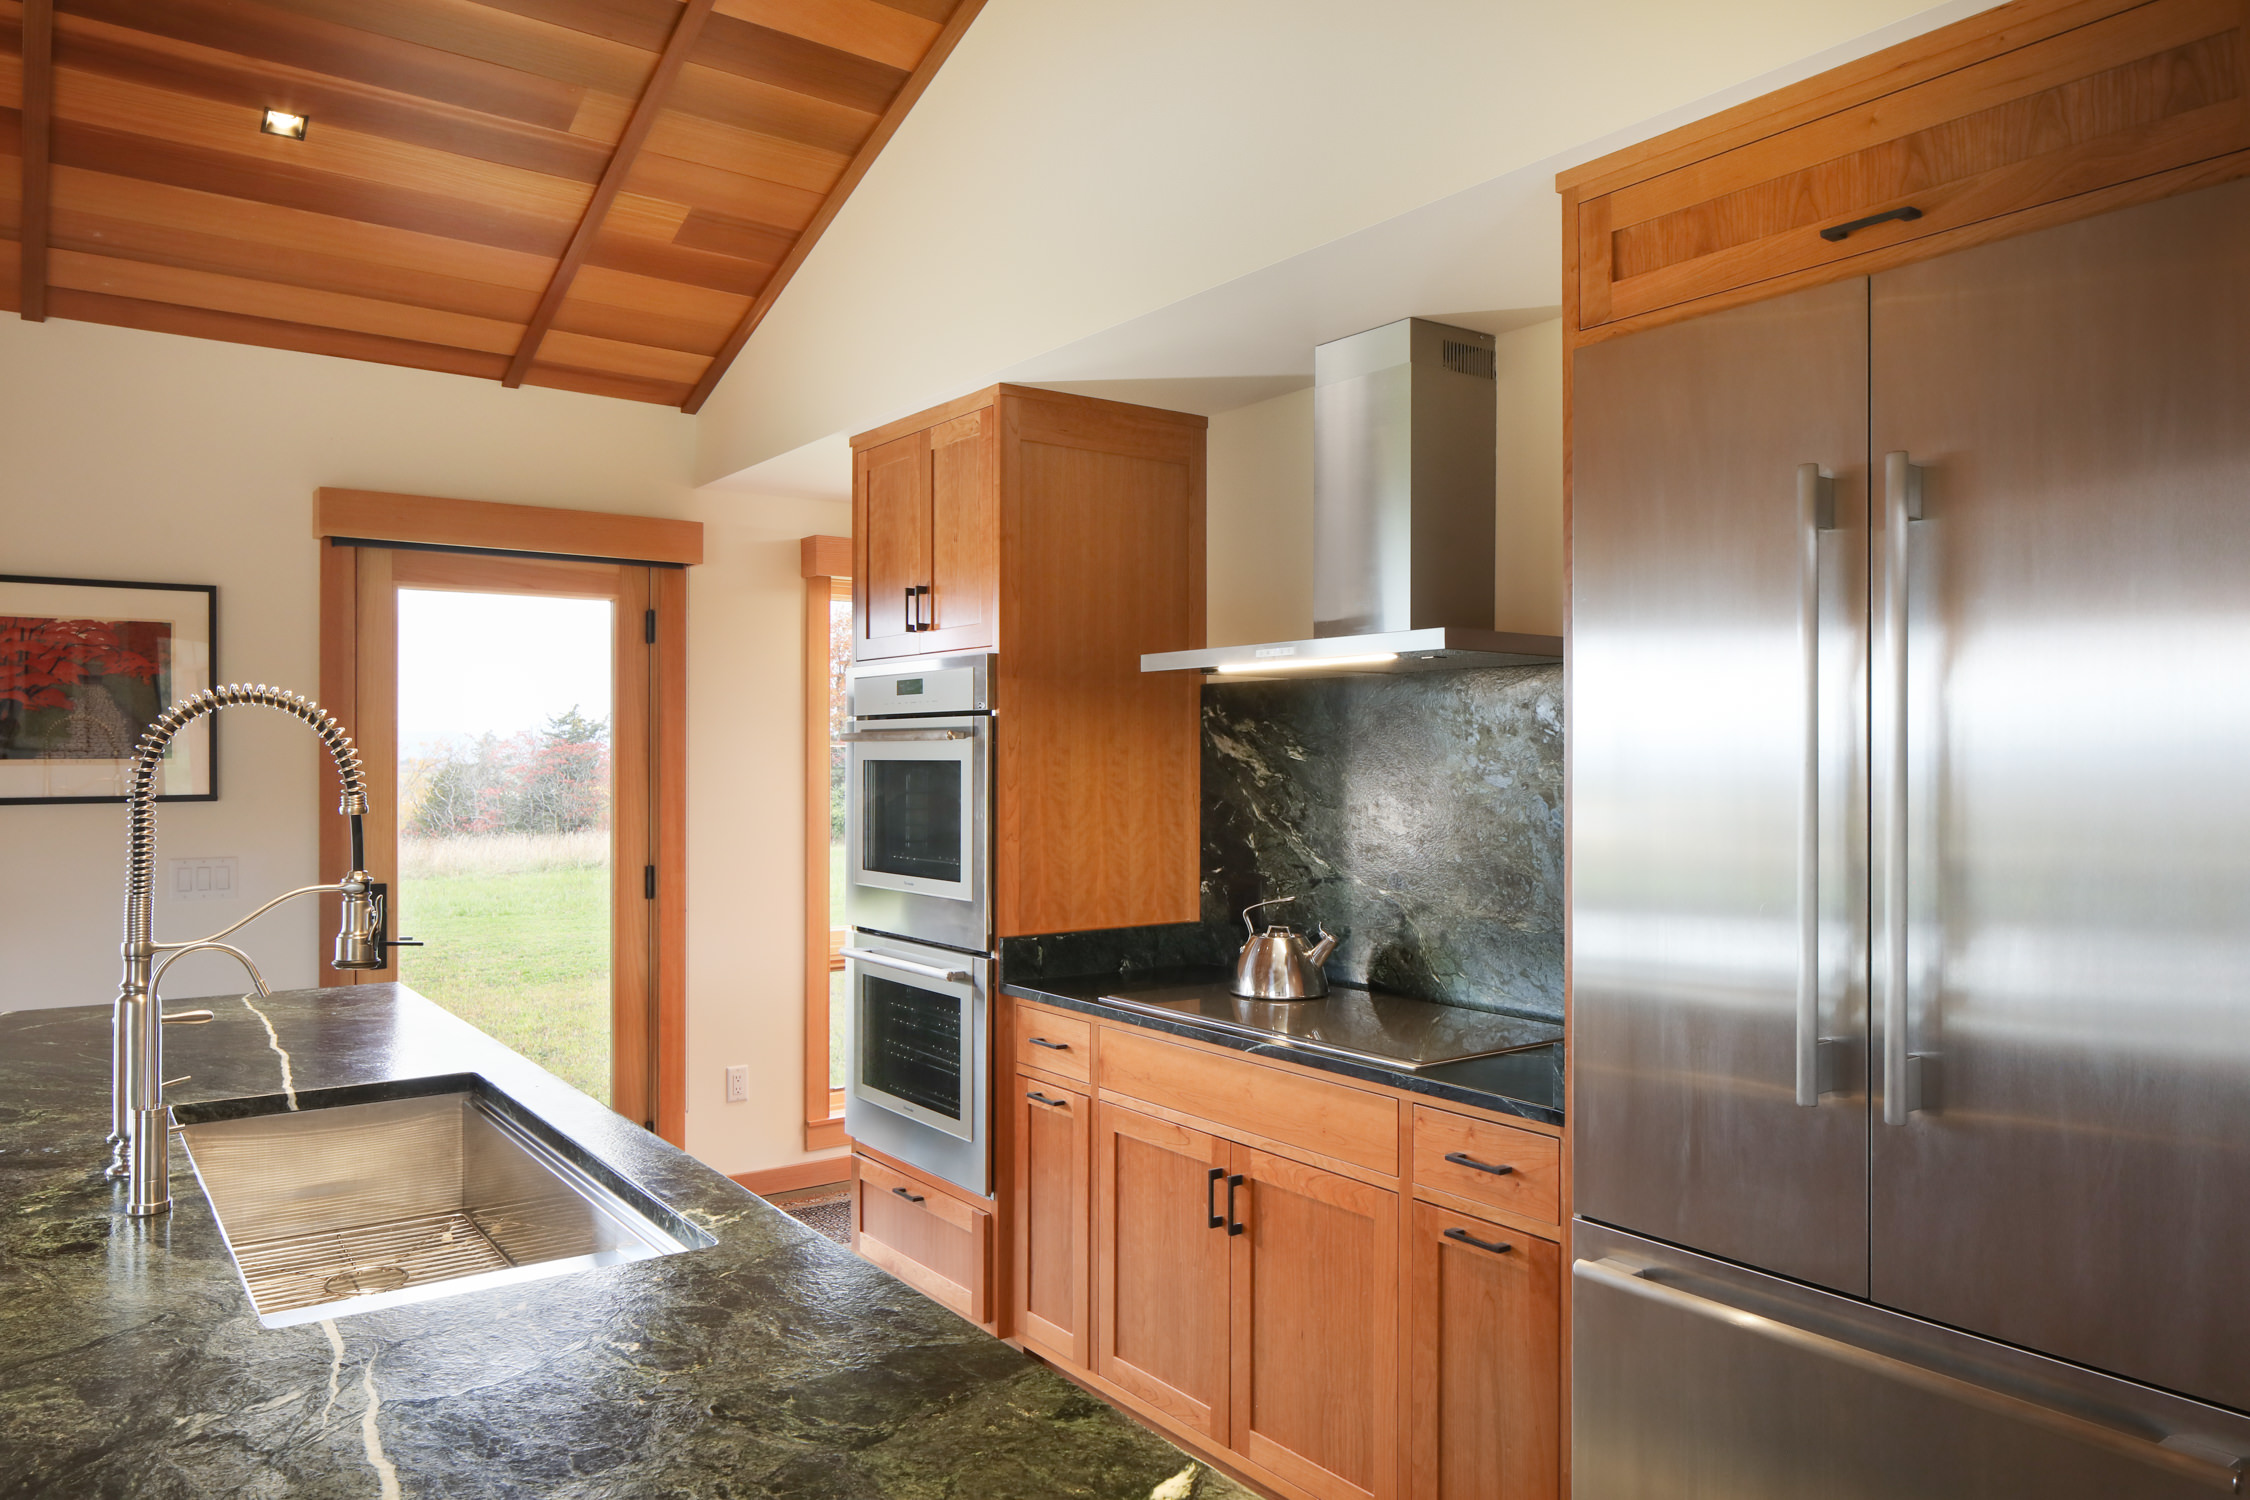 A kitchen with custom wood cabinets in maple finish, stainless steel French door refrigerator and stacked ovens, and Vermont Verde antique stone countertops